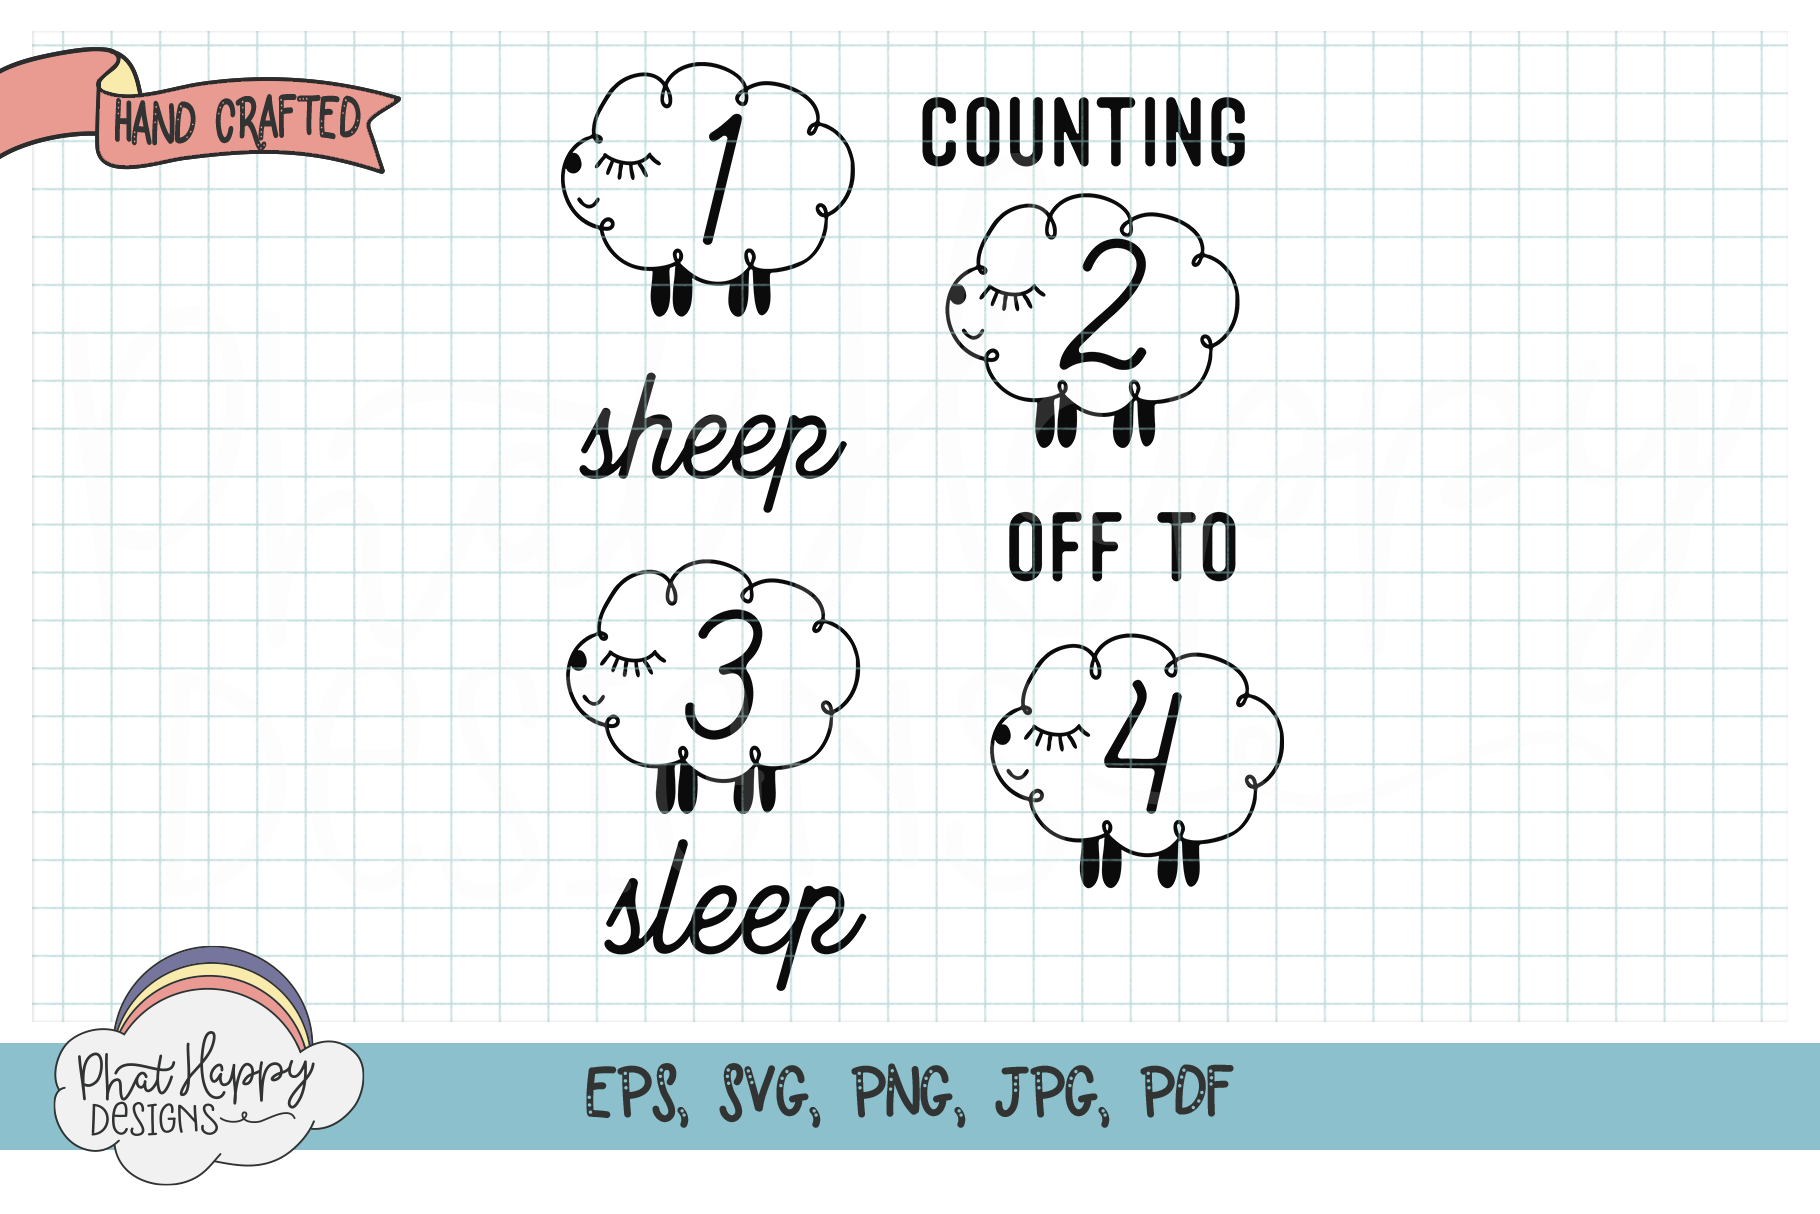 Counting Sheep Nursery Print - SVG Cut File example image 1